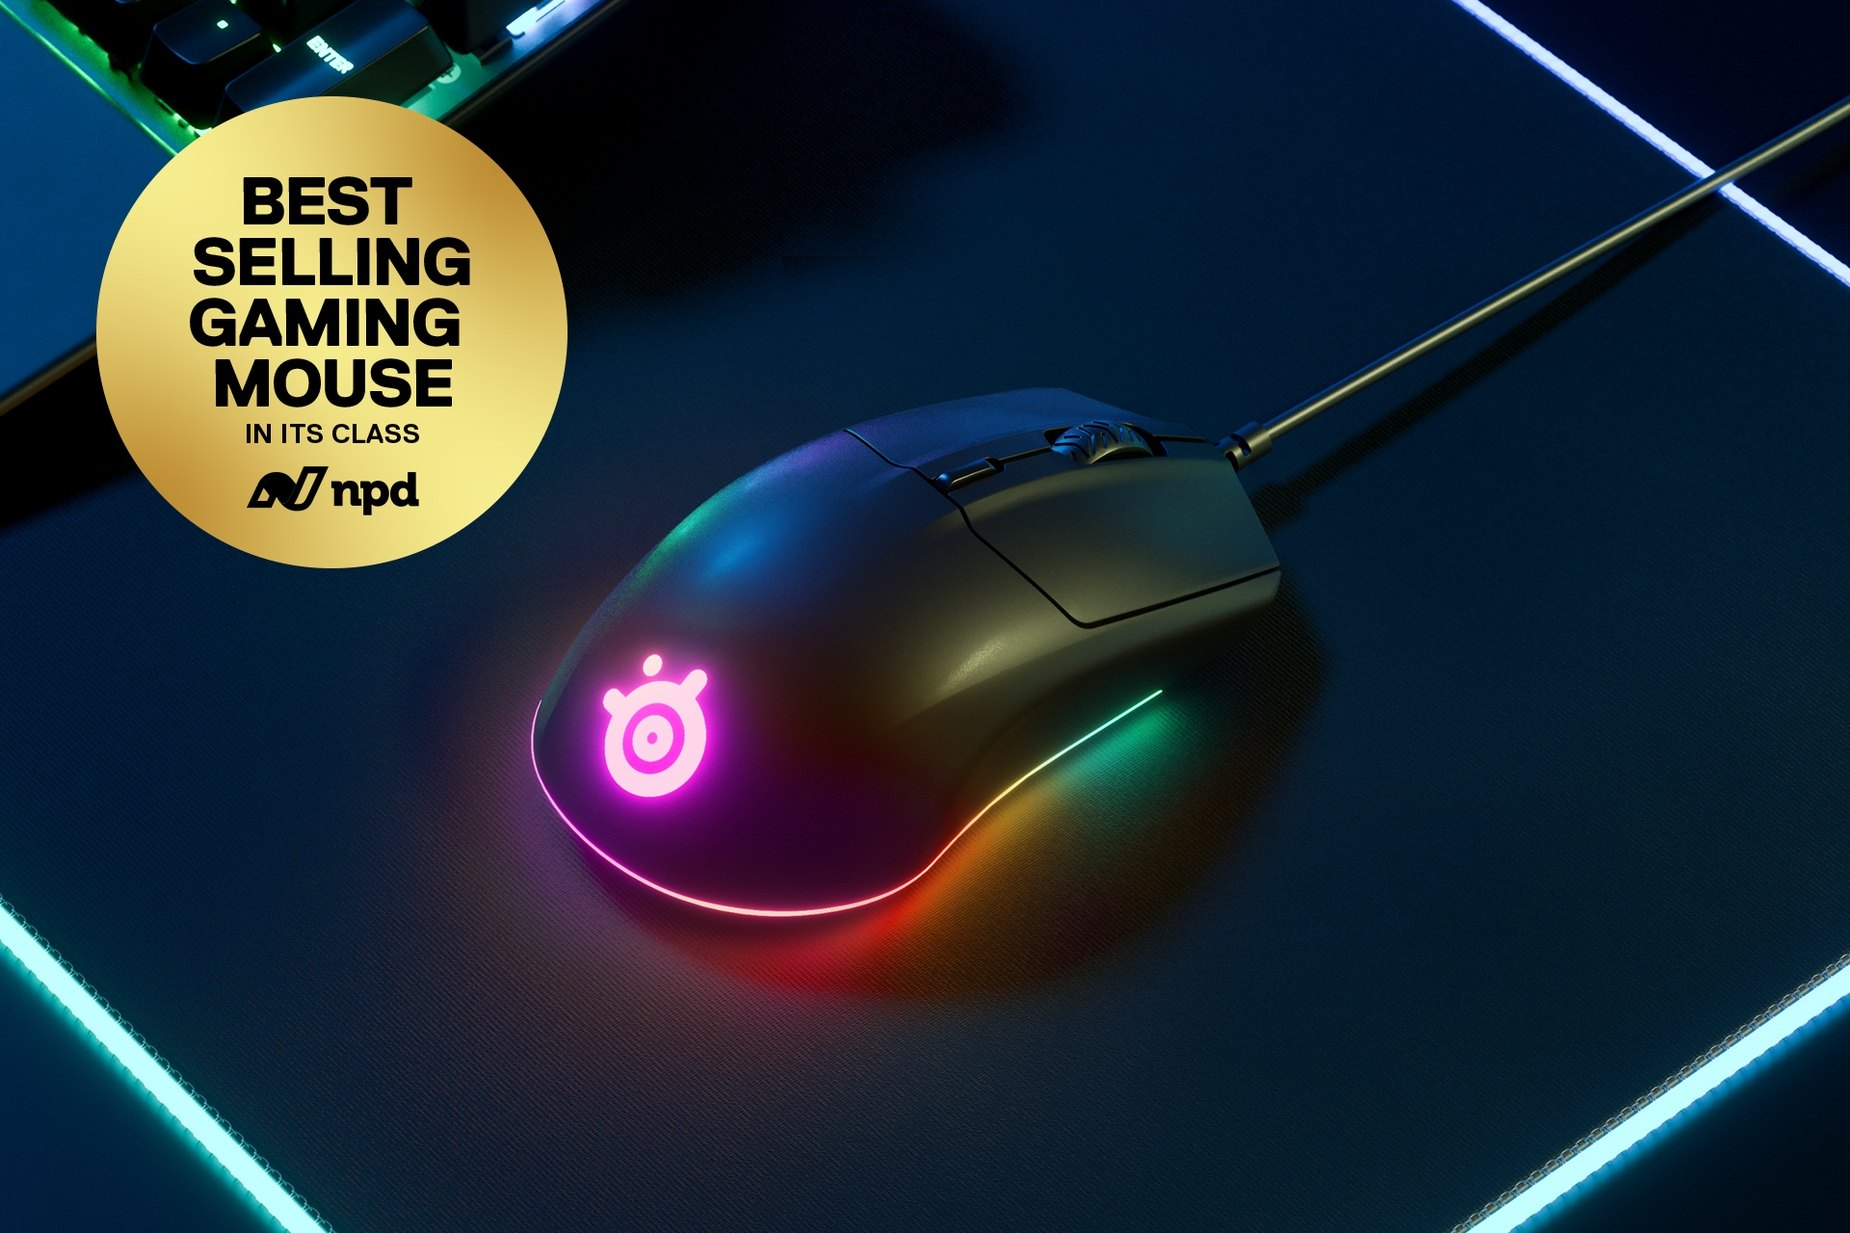 Rival 3 gaming mouse on RGB mousepad. Best selling gaming mouse award from NPD